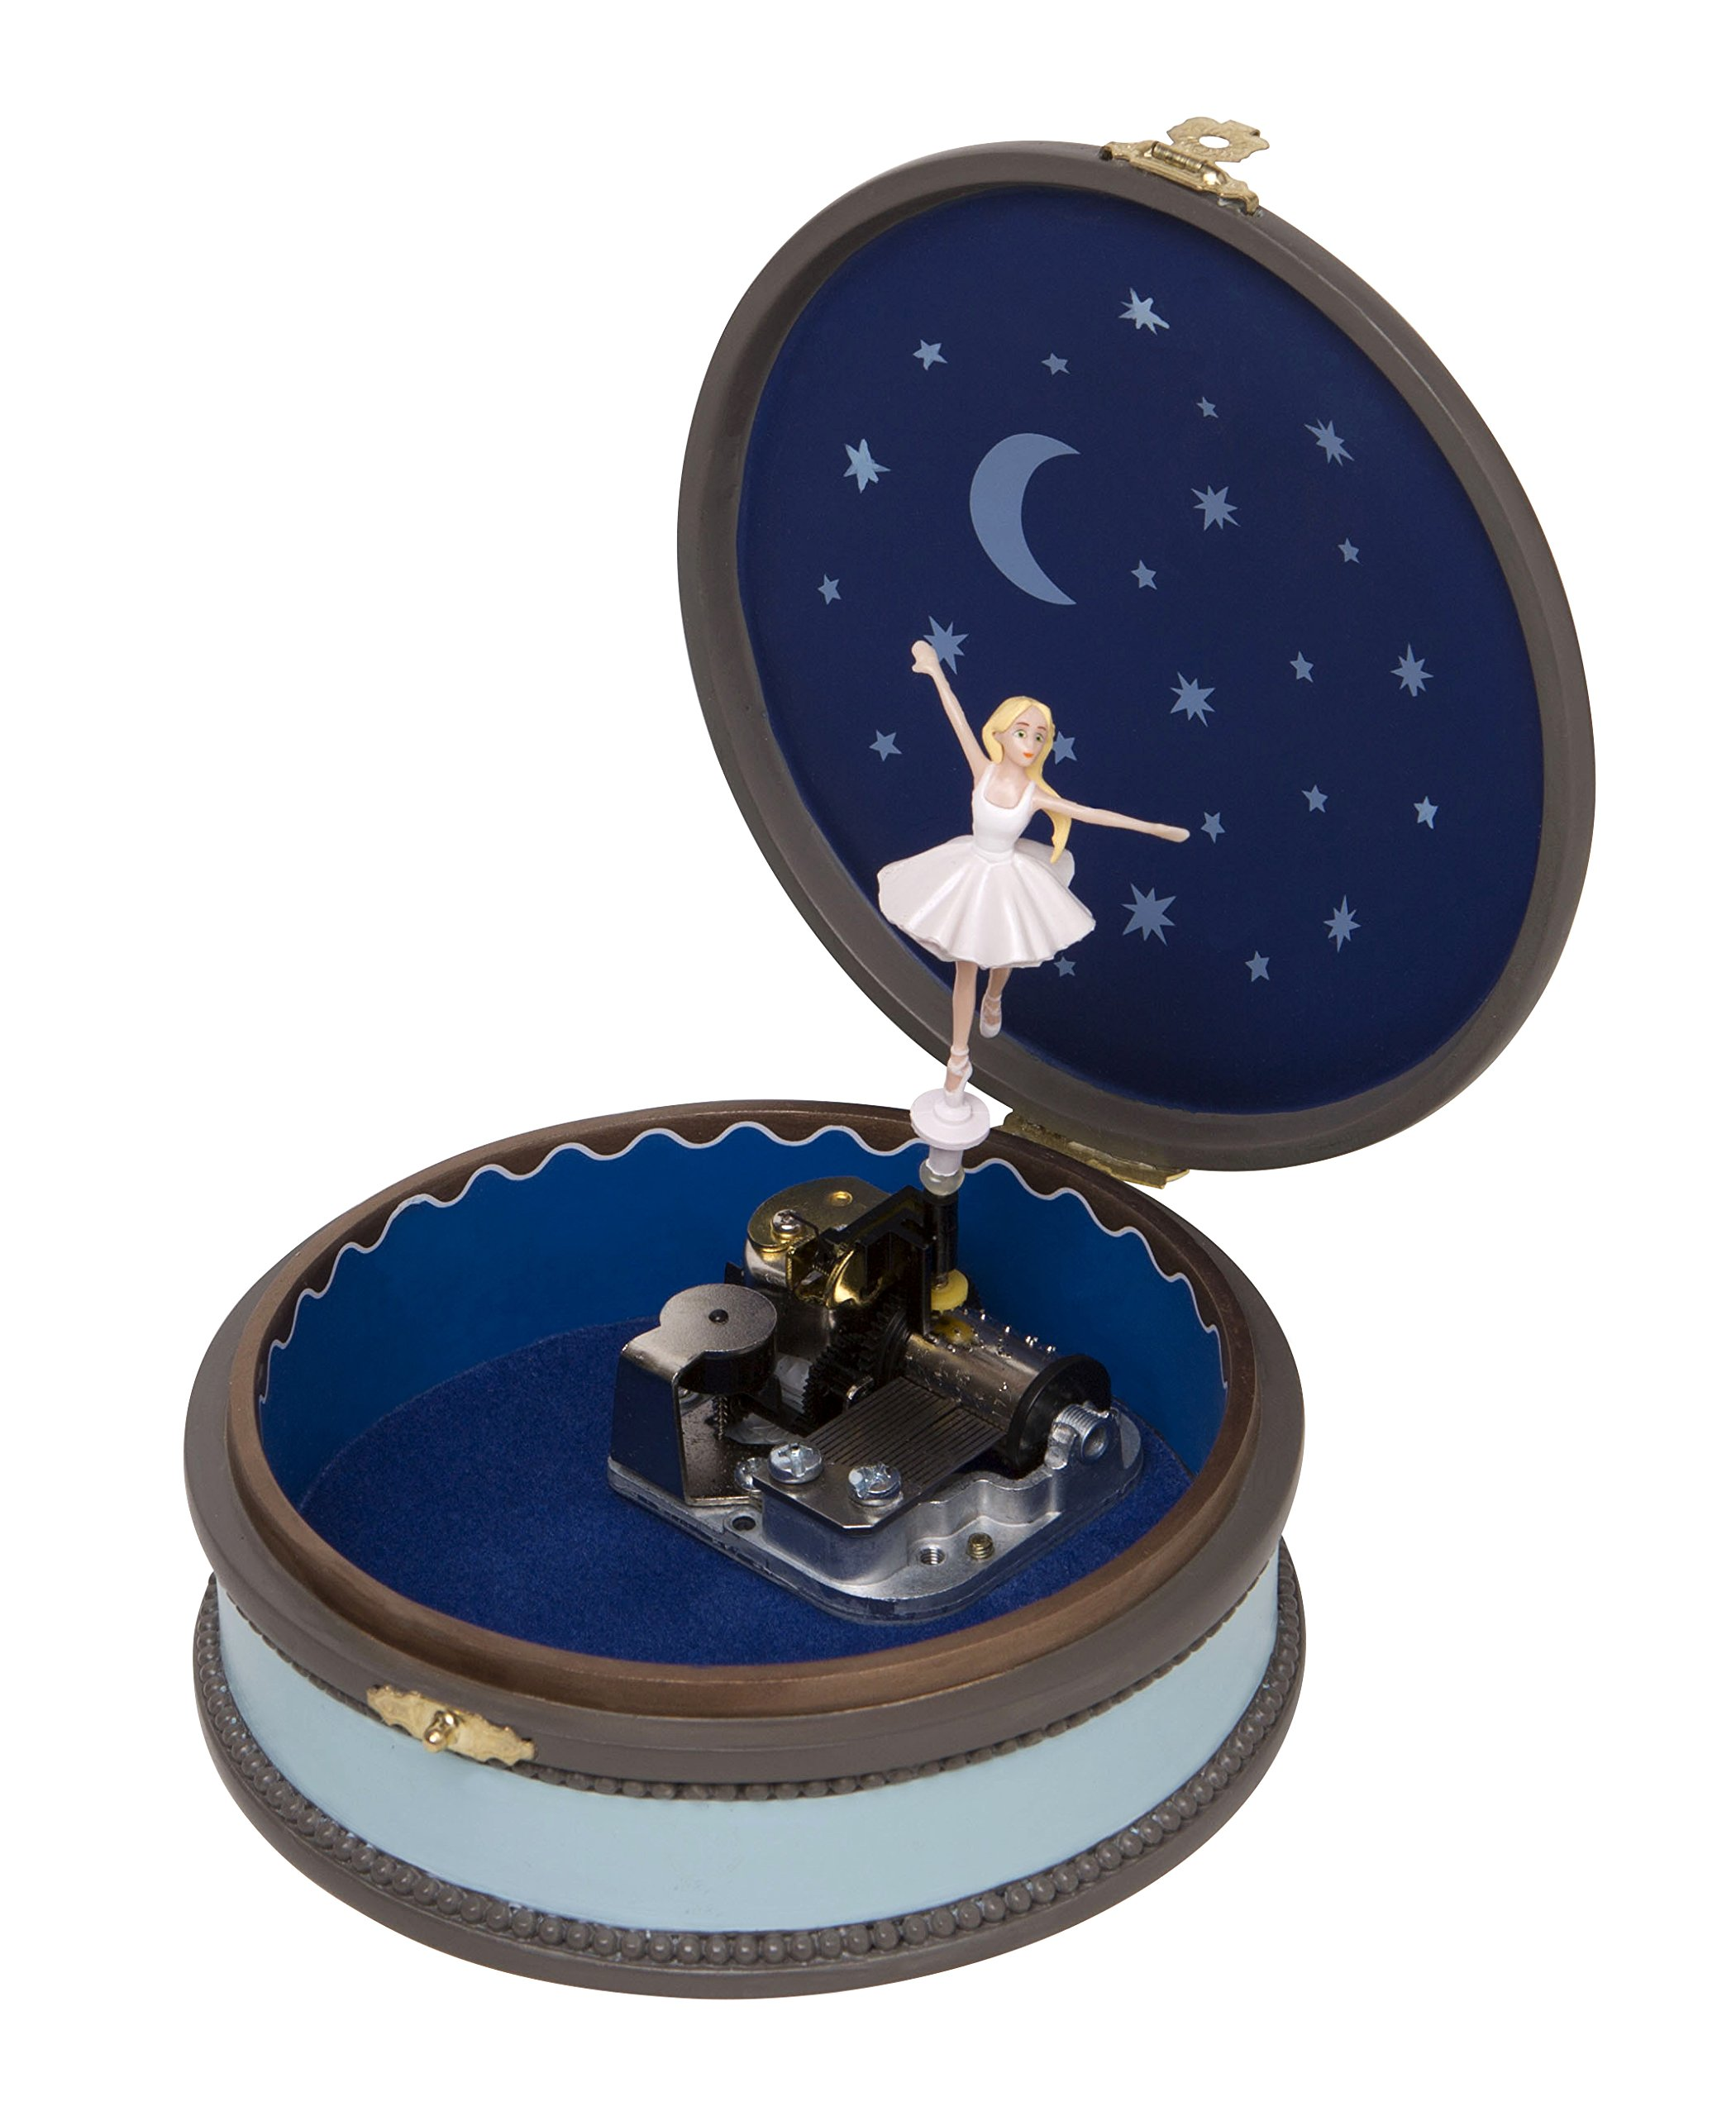 Trousselier - Ballerina - Leap© The Movie - Felicie'S Music Boxes - Musical Jewellery Box - Vintage - ! Very Fragile! - Ideal Young Girl's Gift - Music Swan Lake - Blue Color - 2 Count